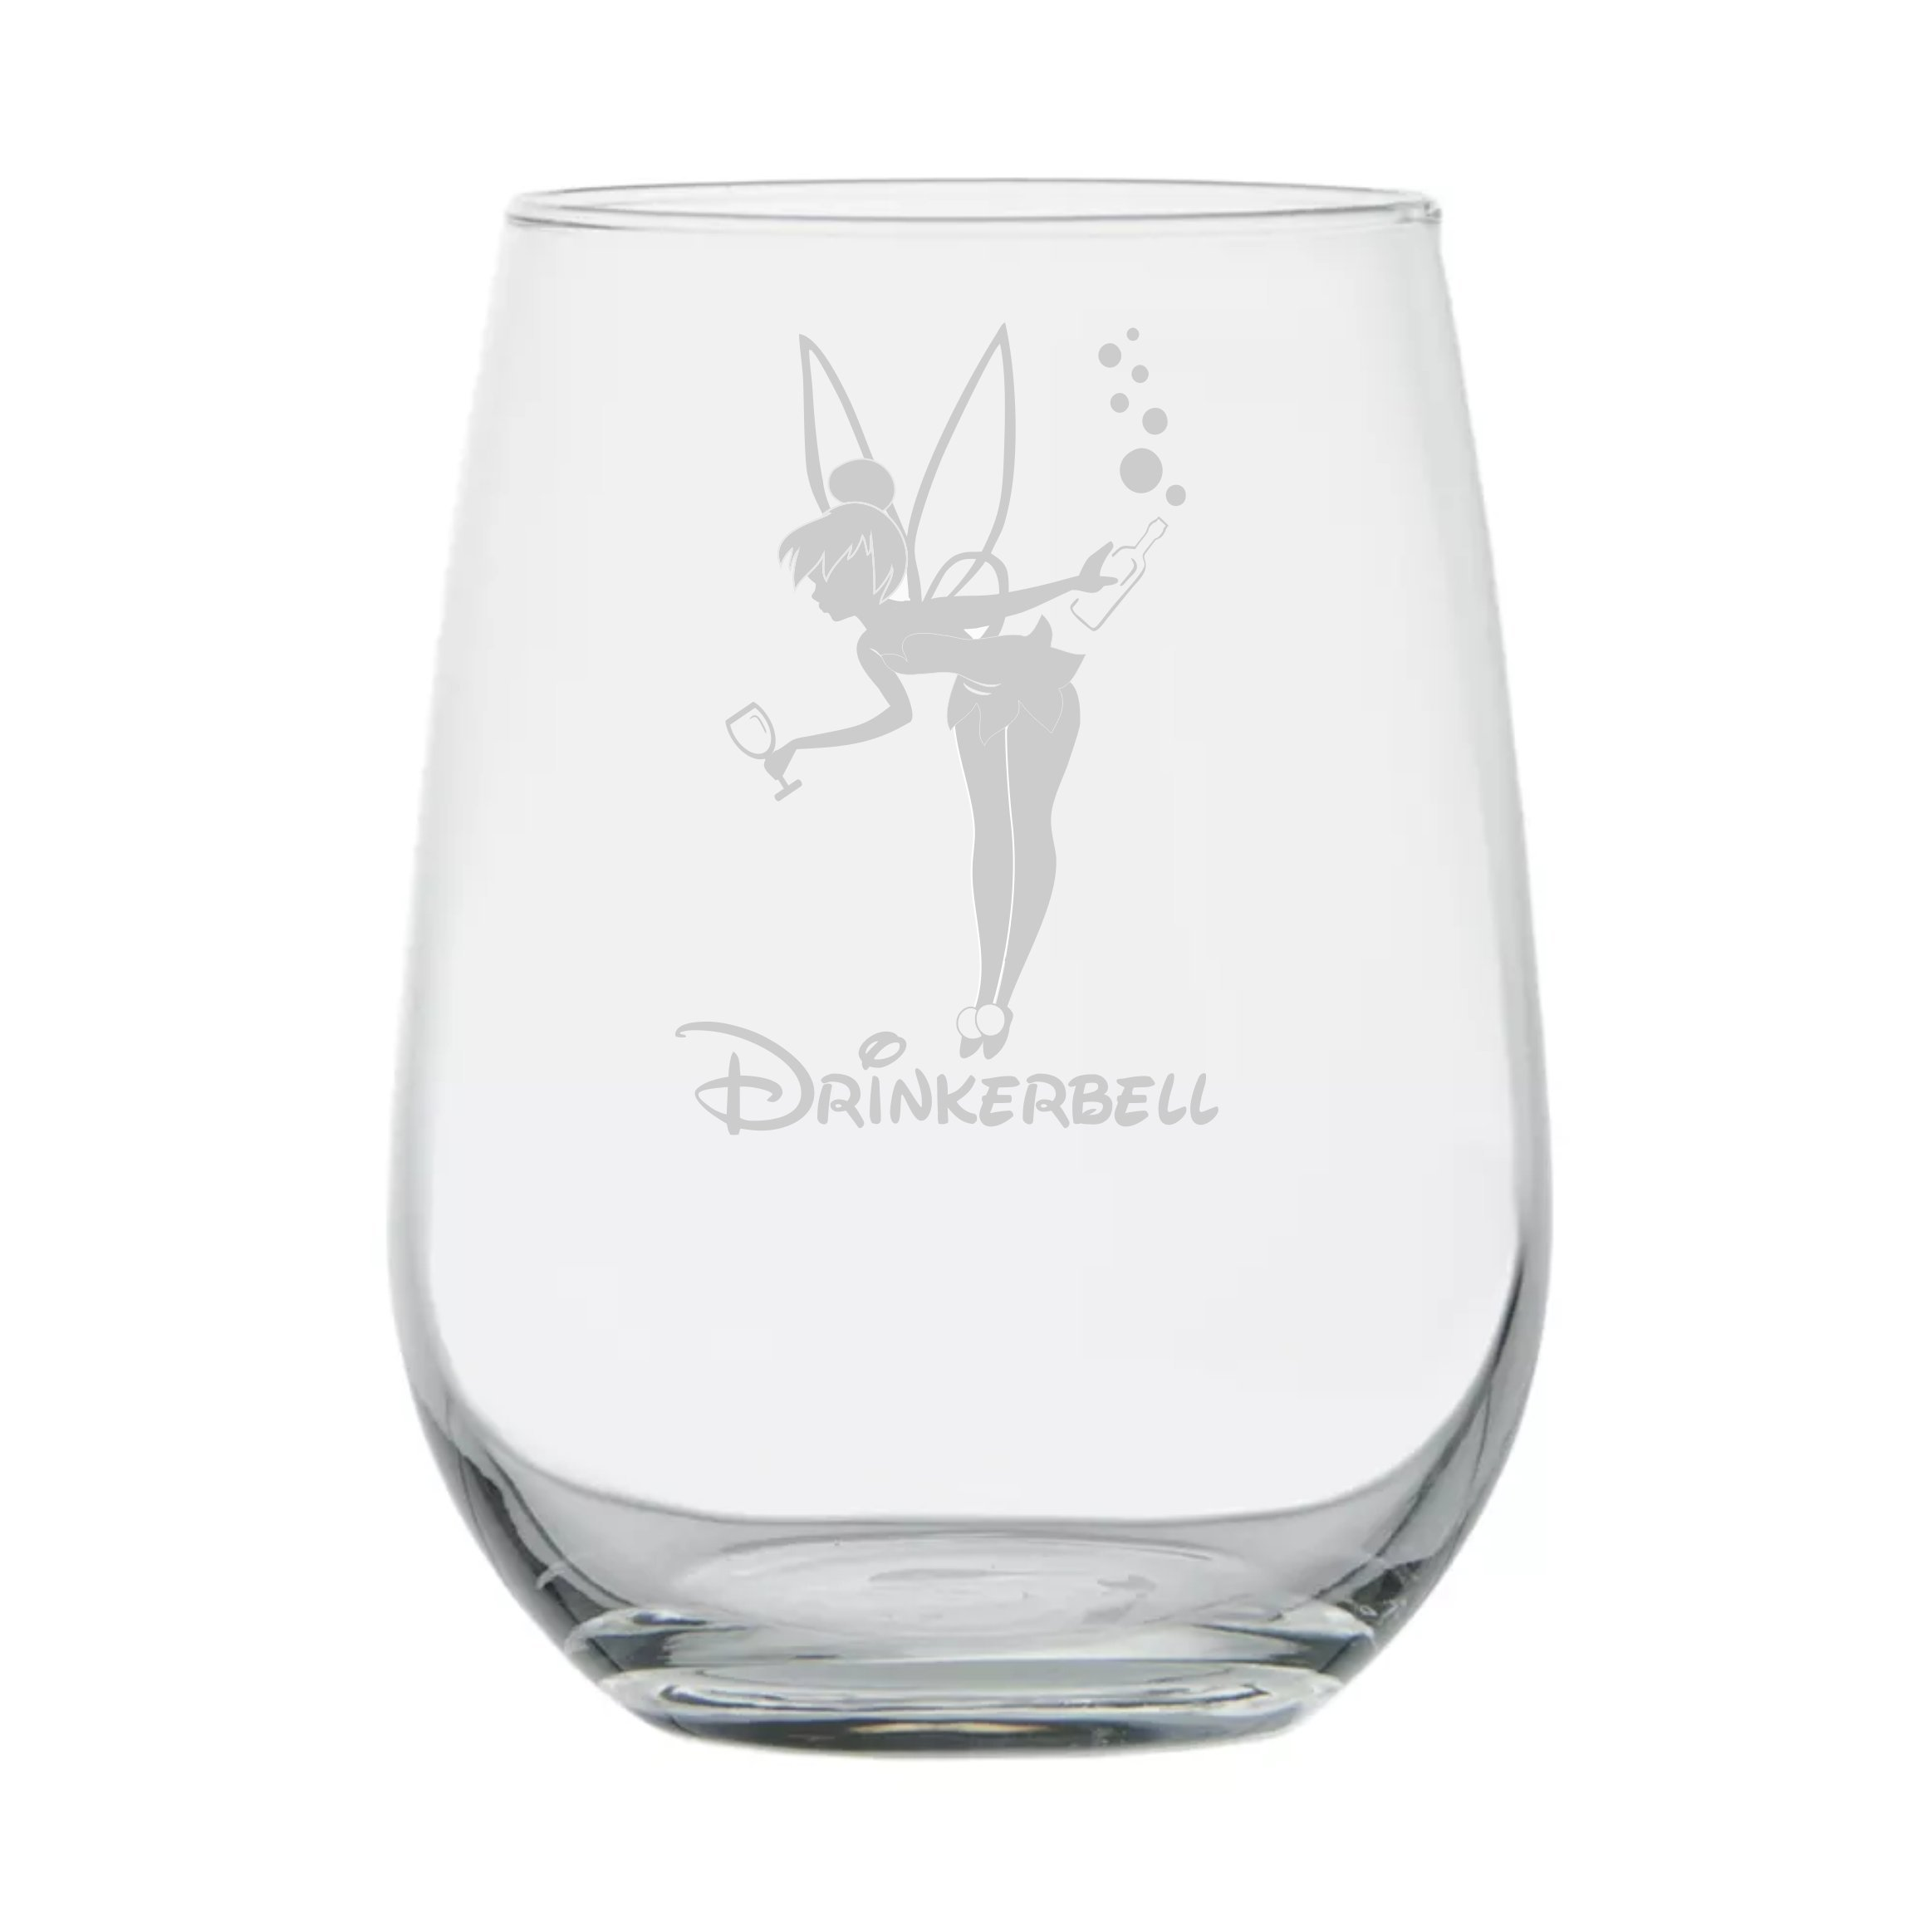 Fairy Gifts ★ Drinkerbell ★ Disney Wine Glass ★ Funny Birthday Gifts ★ Movie Themed ★ Couples Gifts ★ Disney Princess Wine Glasses ★ Fairy tales ★ Mermaids ★ Best Friend Birthday Gift